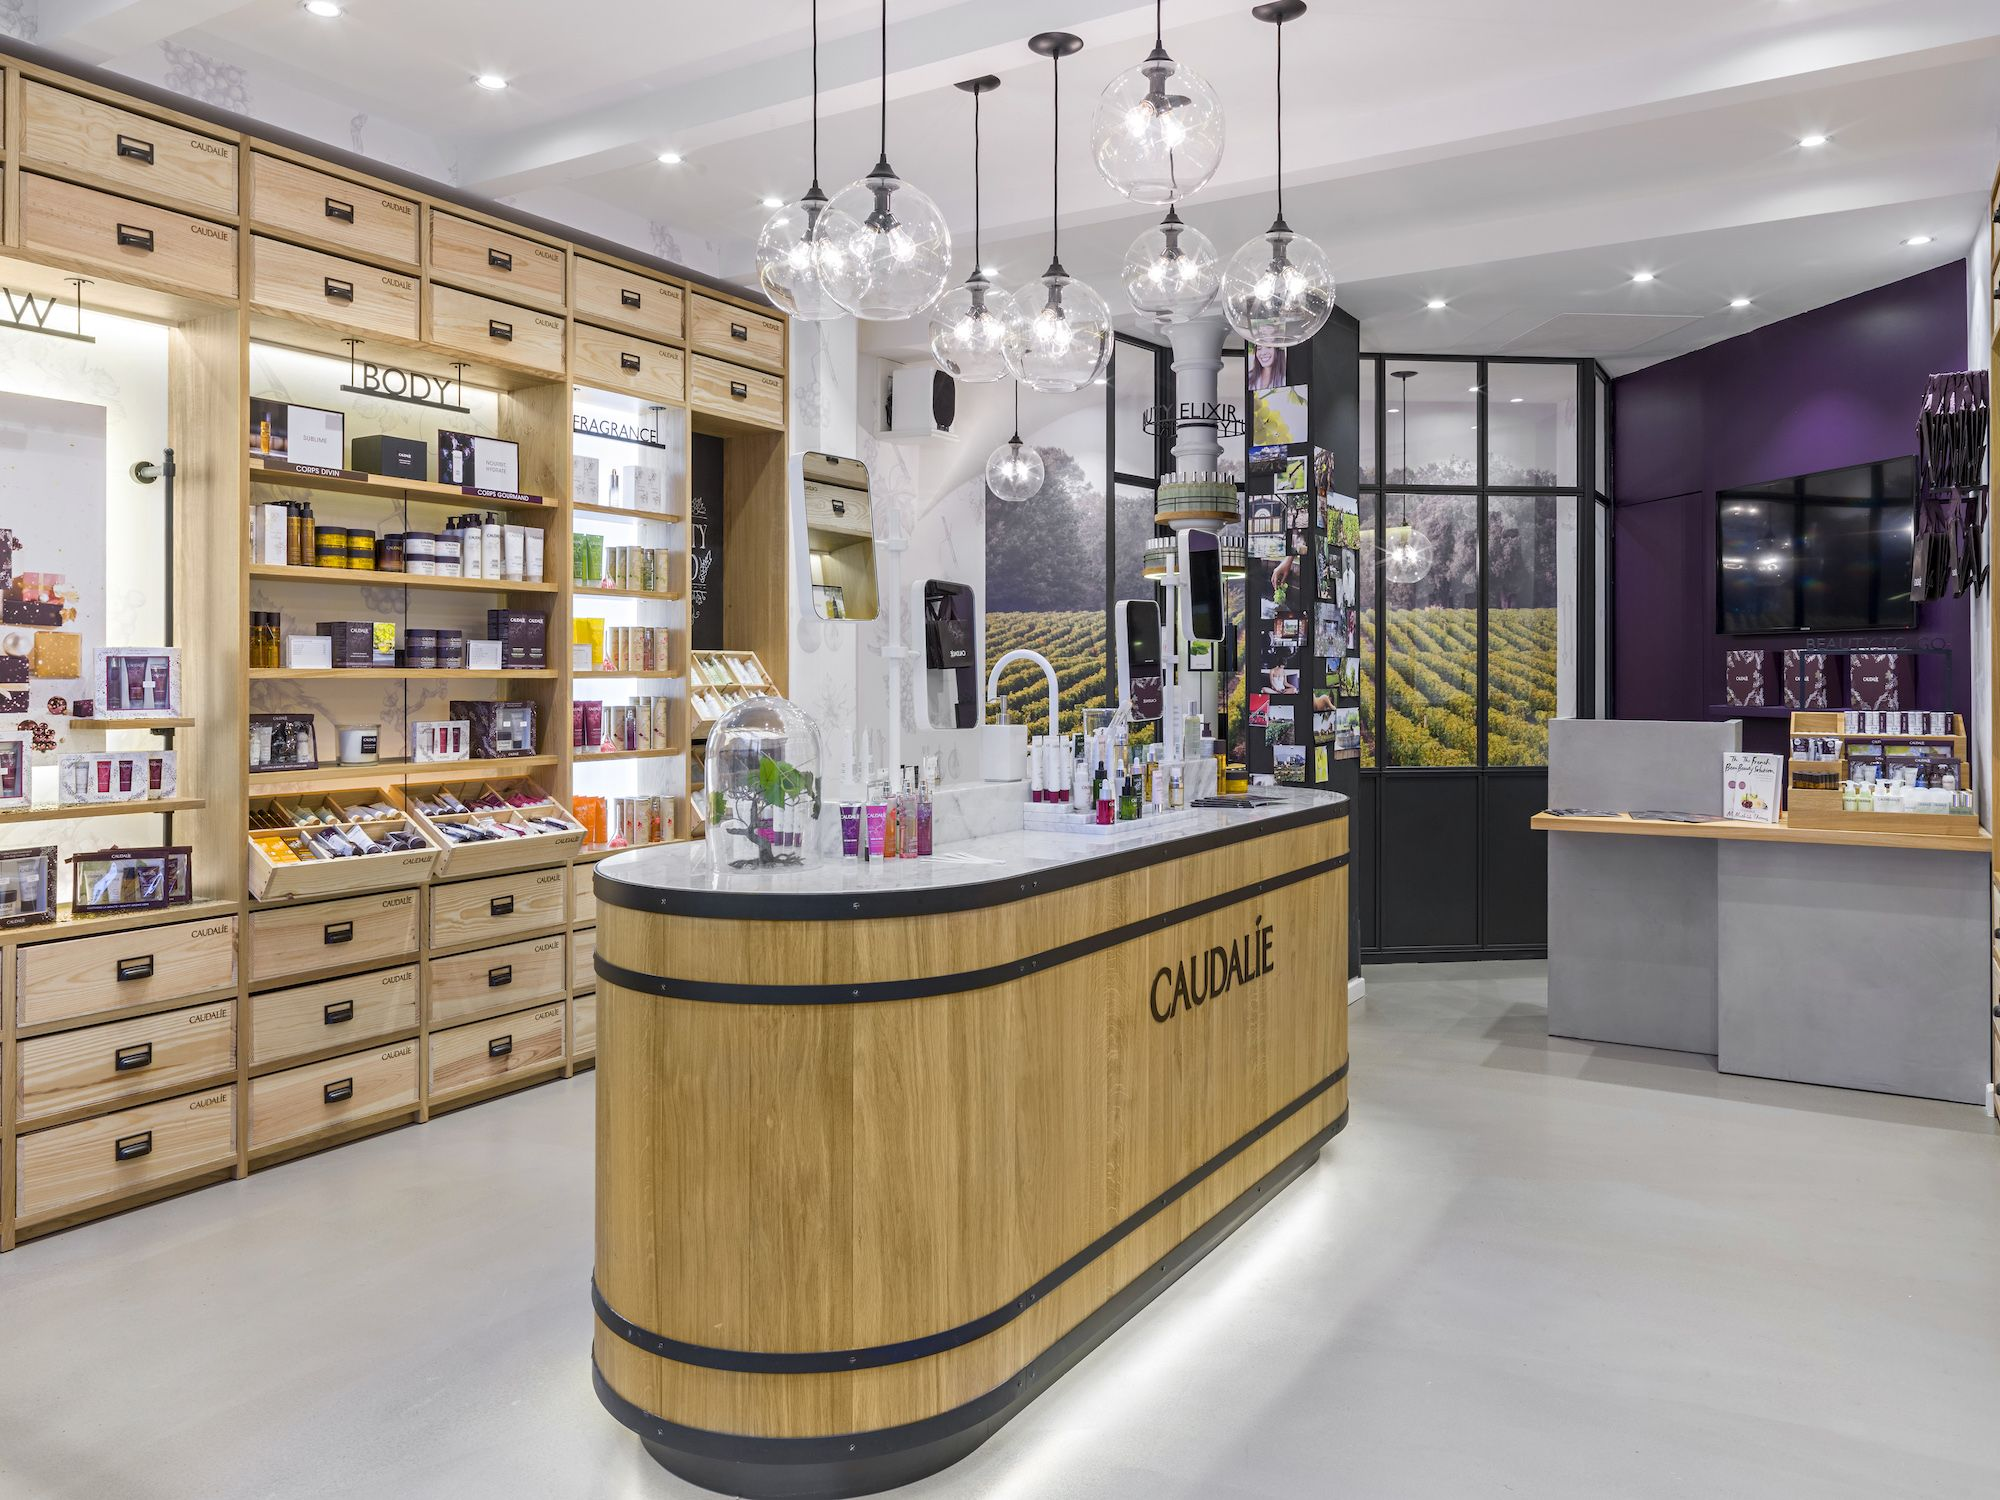 Caudalie products can be mixed and matched to create a custom skin care regimen. Because the skin can suffer from a variety of issues, there is a large collection of Caudalie products that can address the most common ailments such as fine lines, wrinkles, breakouts, dullness, .